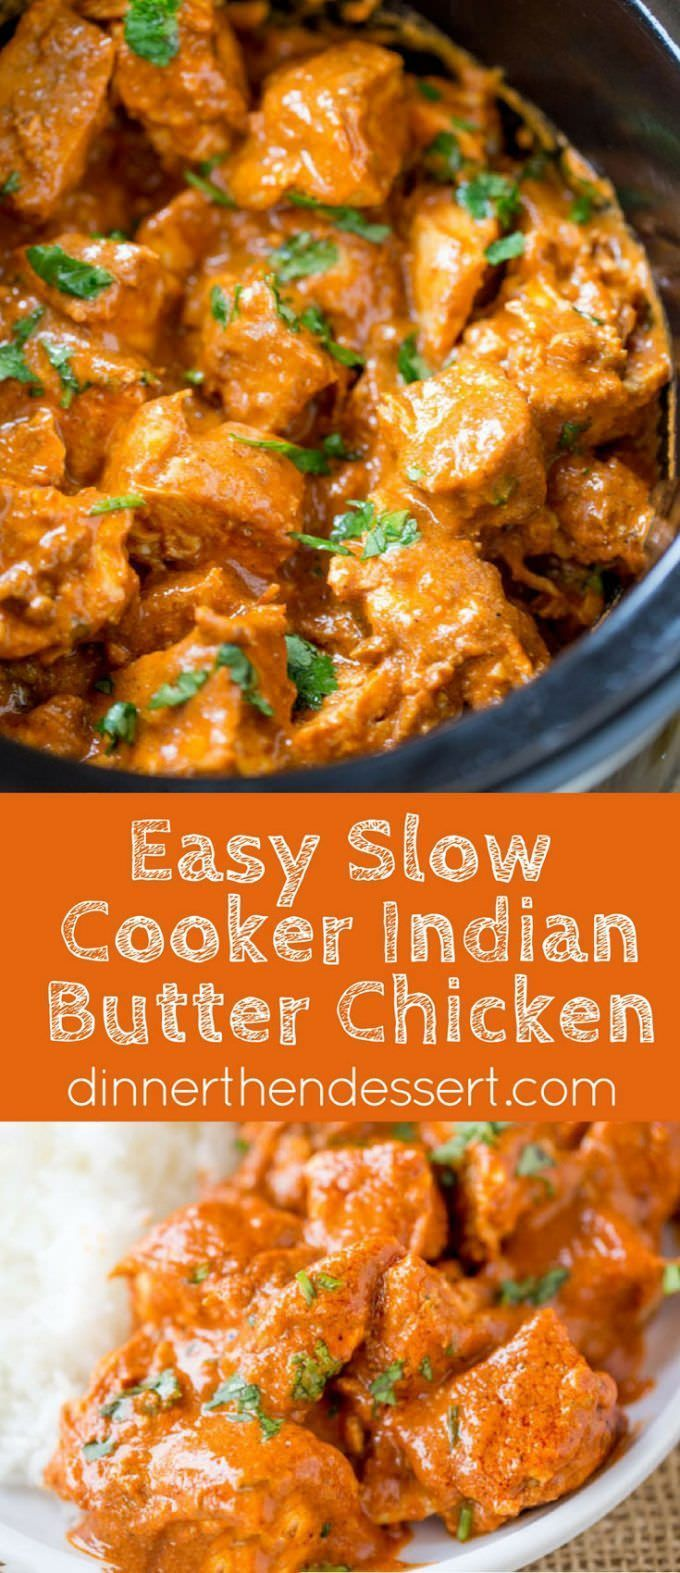 Mouthwatering Slow Cooker Indian Butter Chicken Recipe images